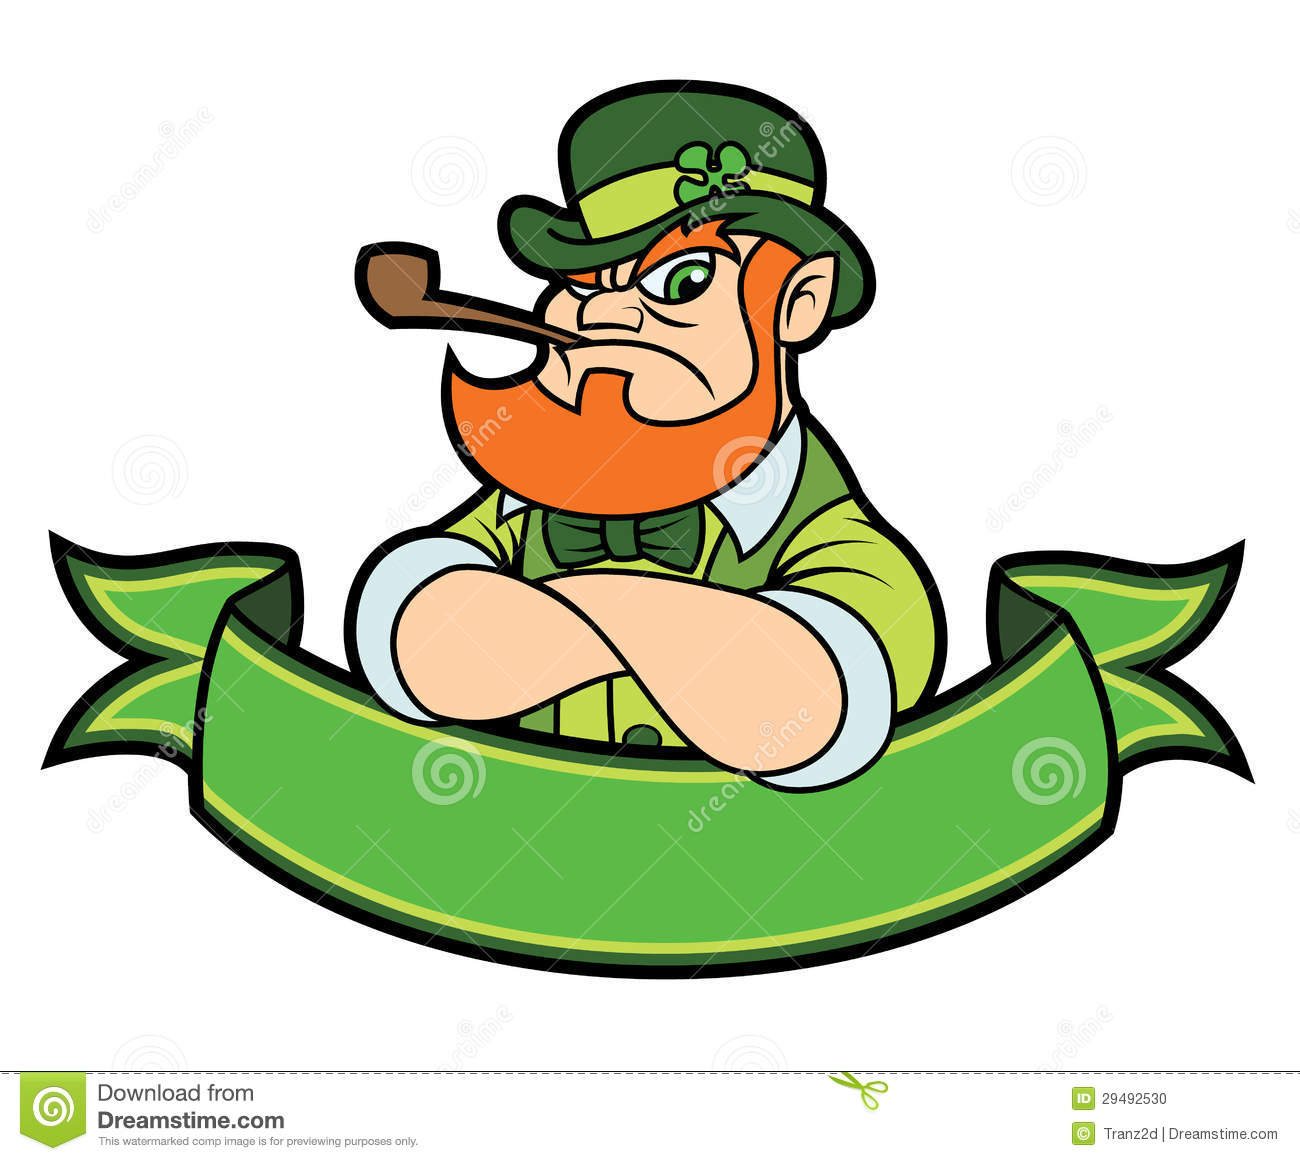 Define leprechaun. leprechaun synonyms, leprechaun pronunciation, leprechaun translation, English dictionary definition of leprechaun. n. In Irish folklore, a mischievous elflike creature or fairy who grants wishes or reveals the location of hidden treasure when captured. lep′re·chaun′ish.